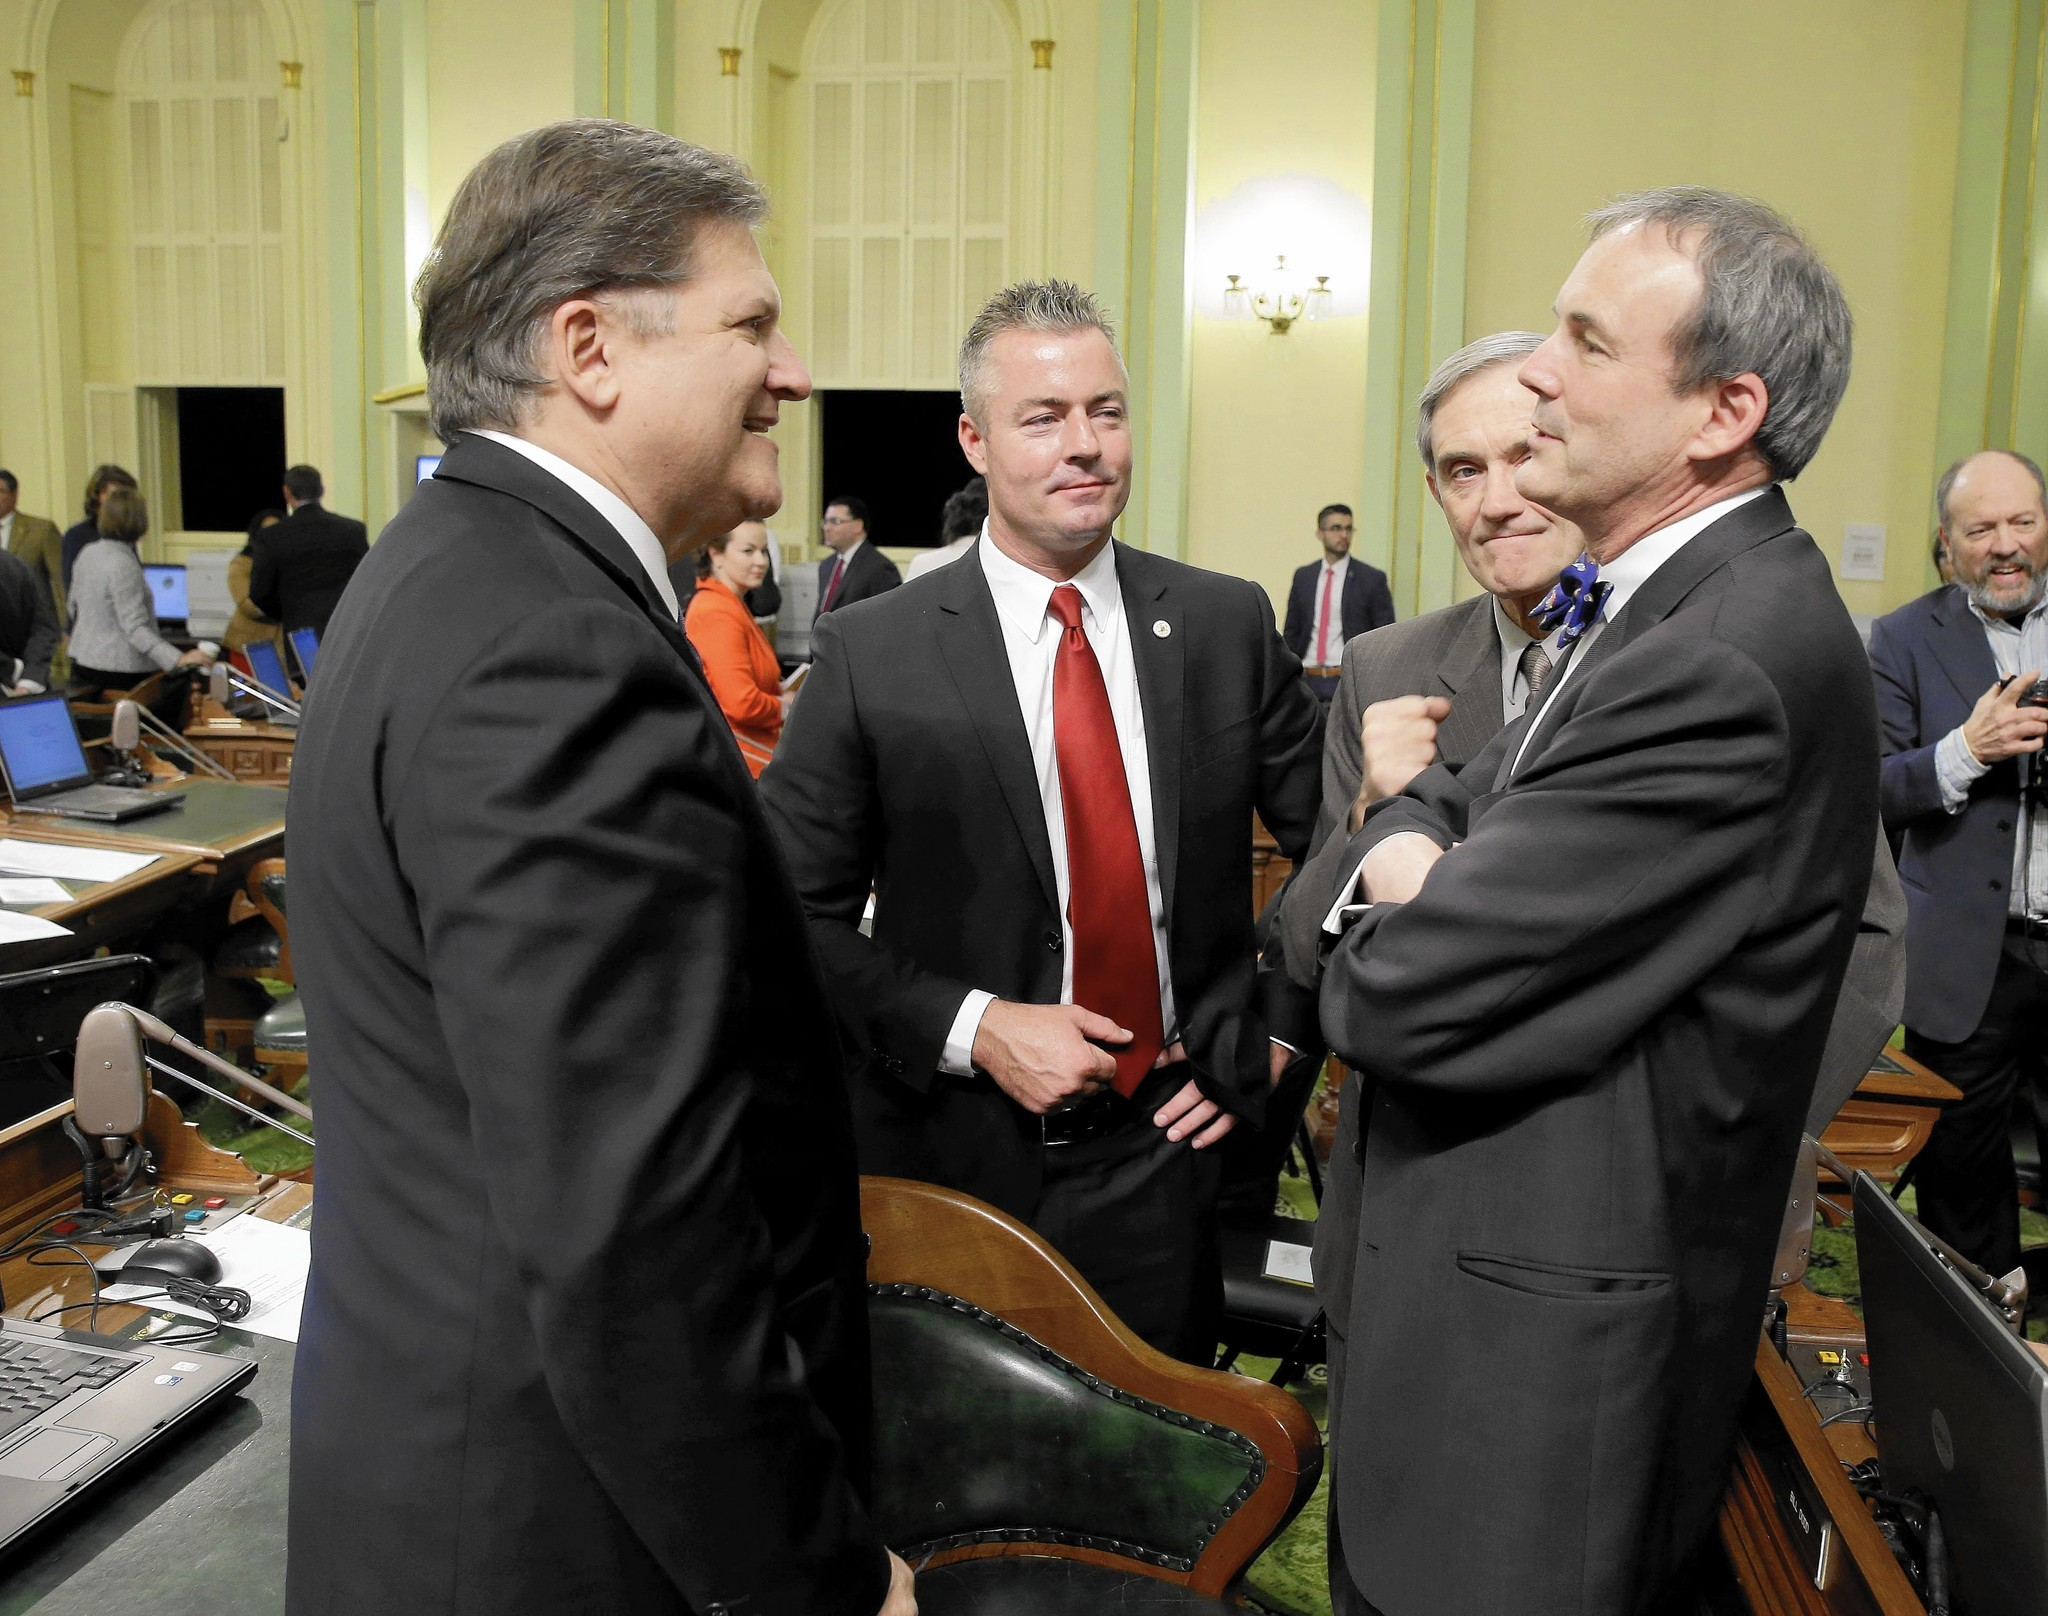 Assemblyman Travis Allen, center in red tie, is flanked by State Sen. Bob Hertzberg (D-Van Nuys) and Charles Munger Jr. in 2014. (Rich Pedroncelli / Associated Press)